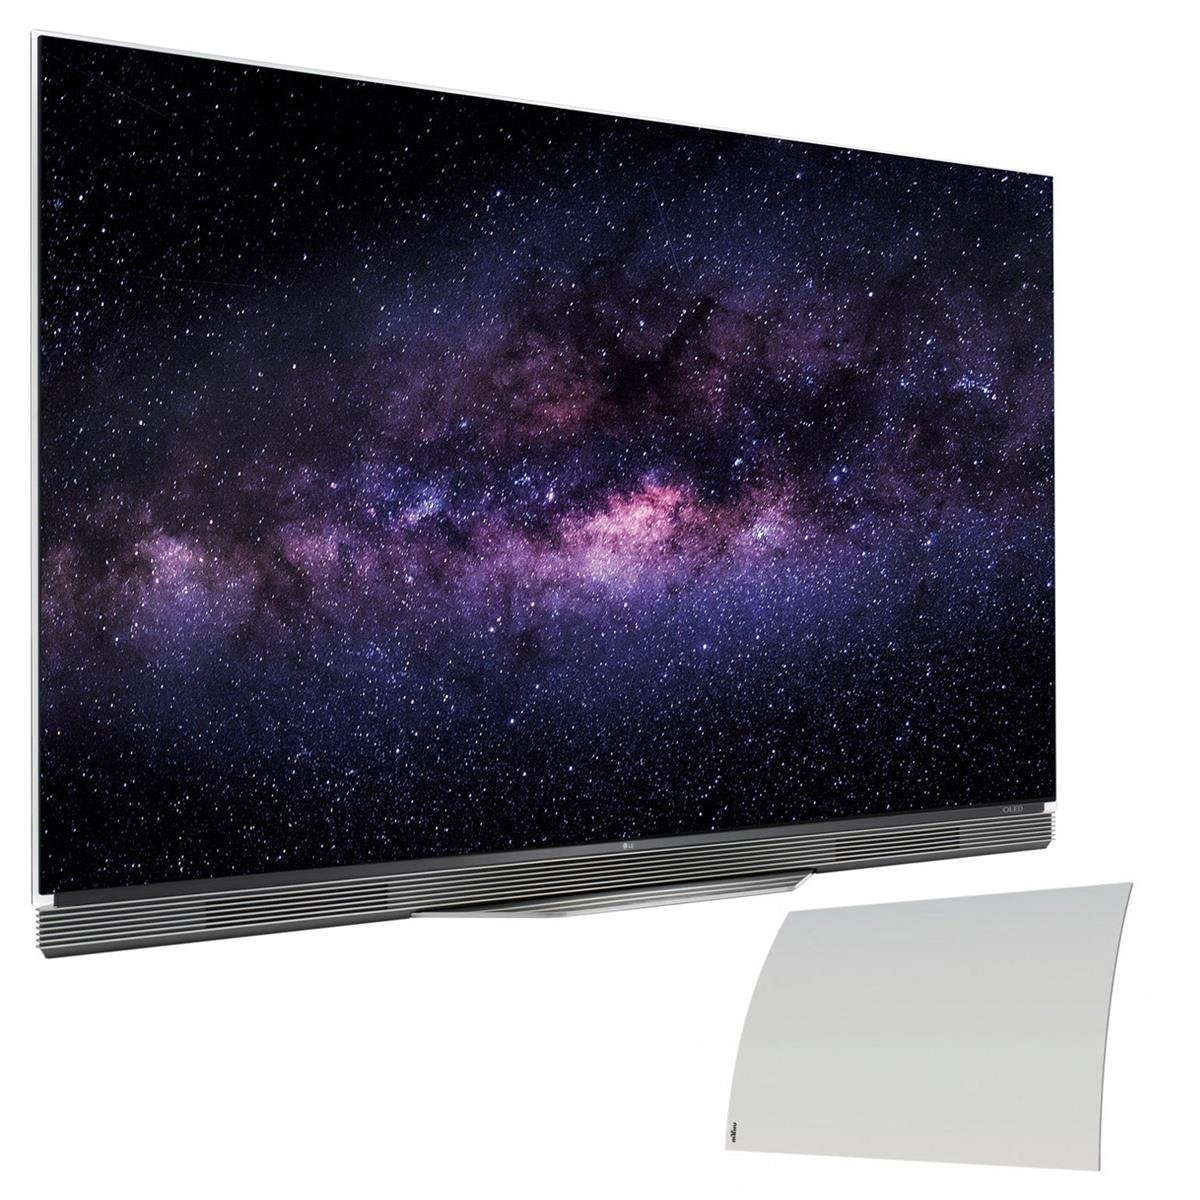 """LG OLED55E6P 55"""" Class E6 Series 4K UHD OLED 3D Smart TV with Mohu Curve 50 Indoor Amplified HDTV Antenna"""